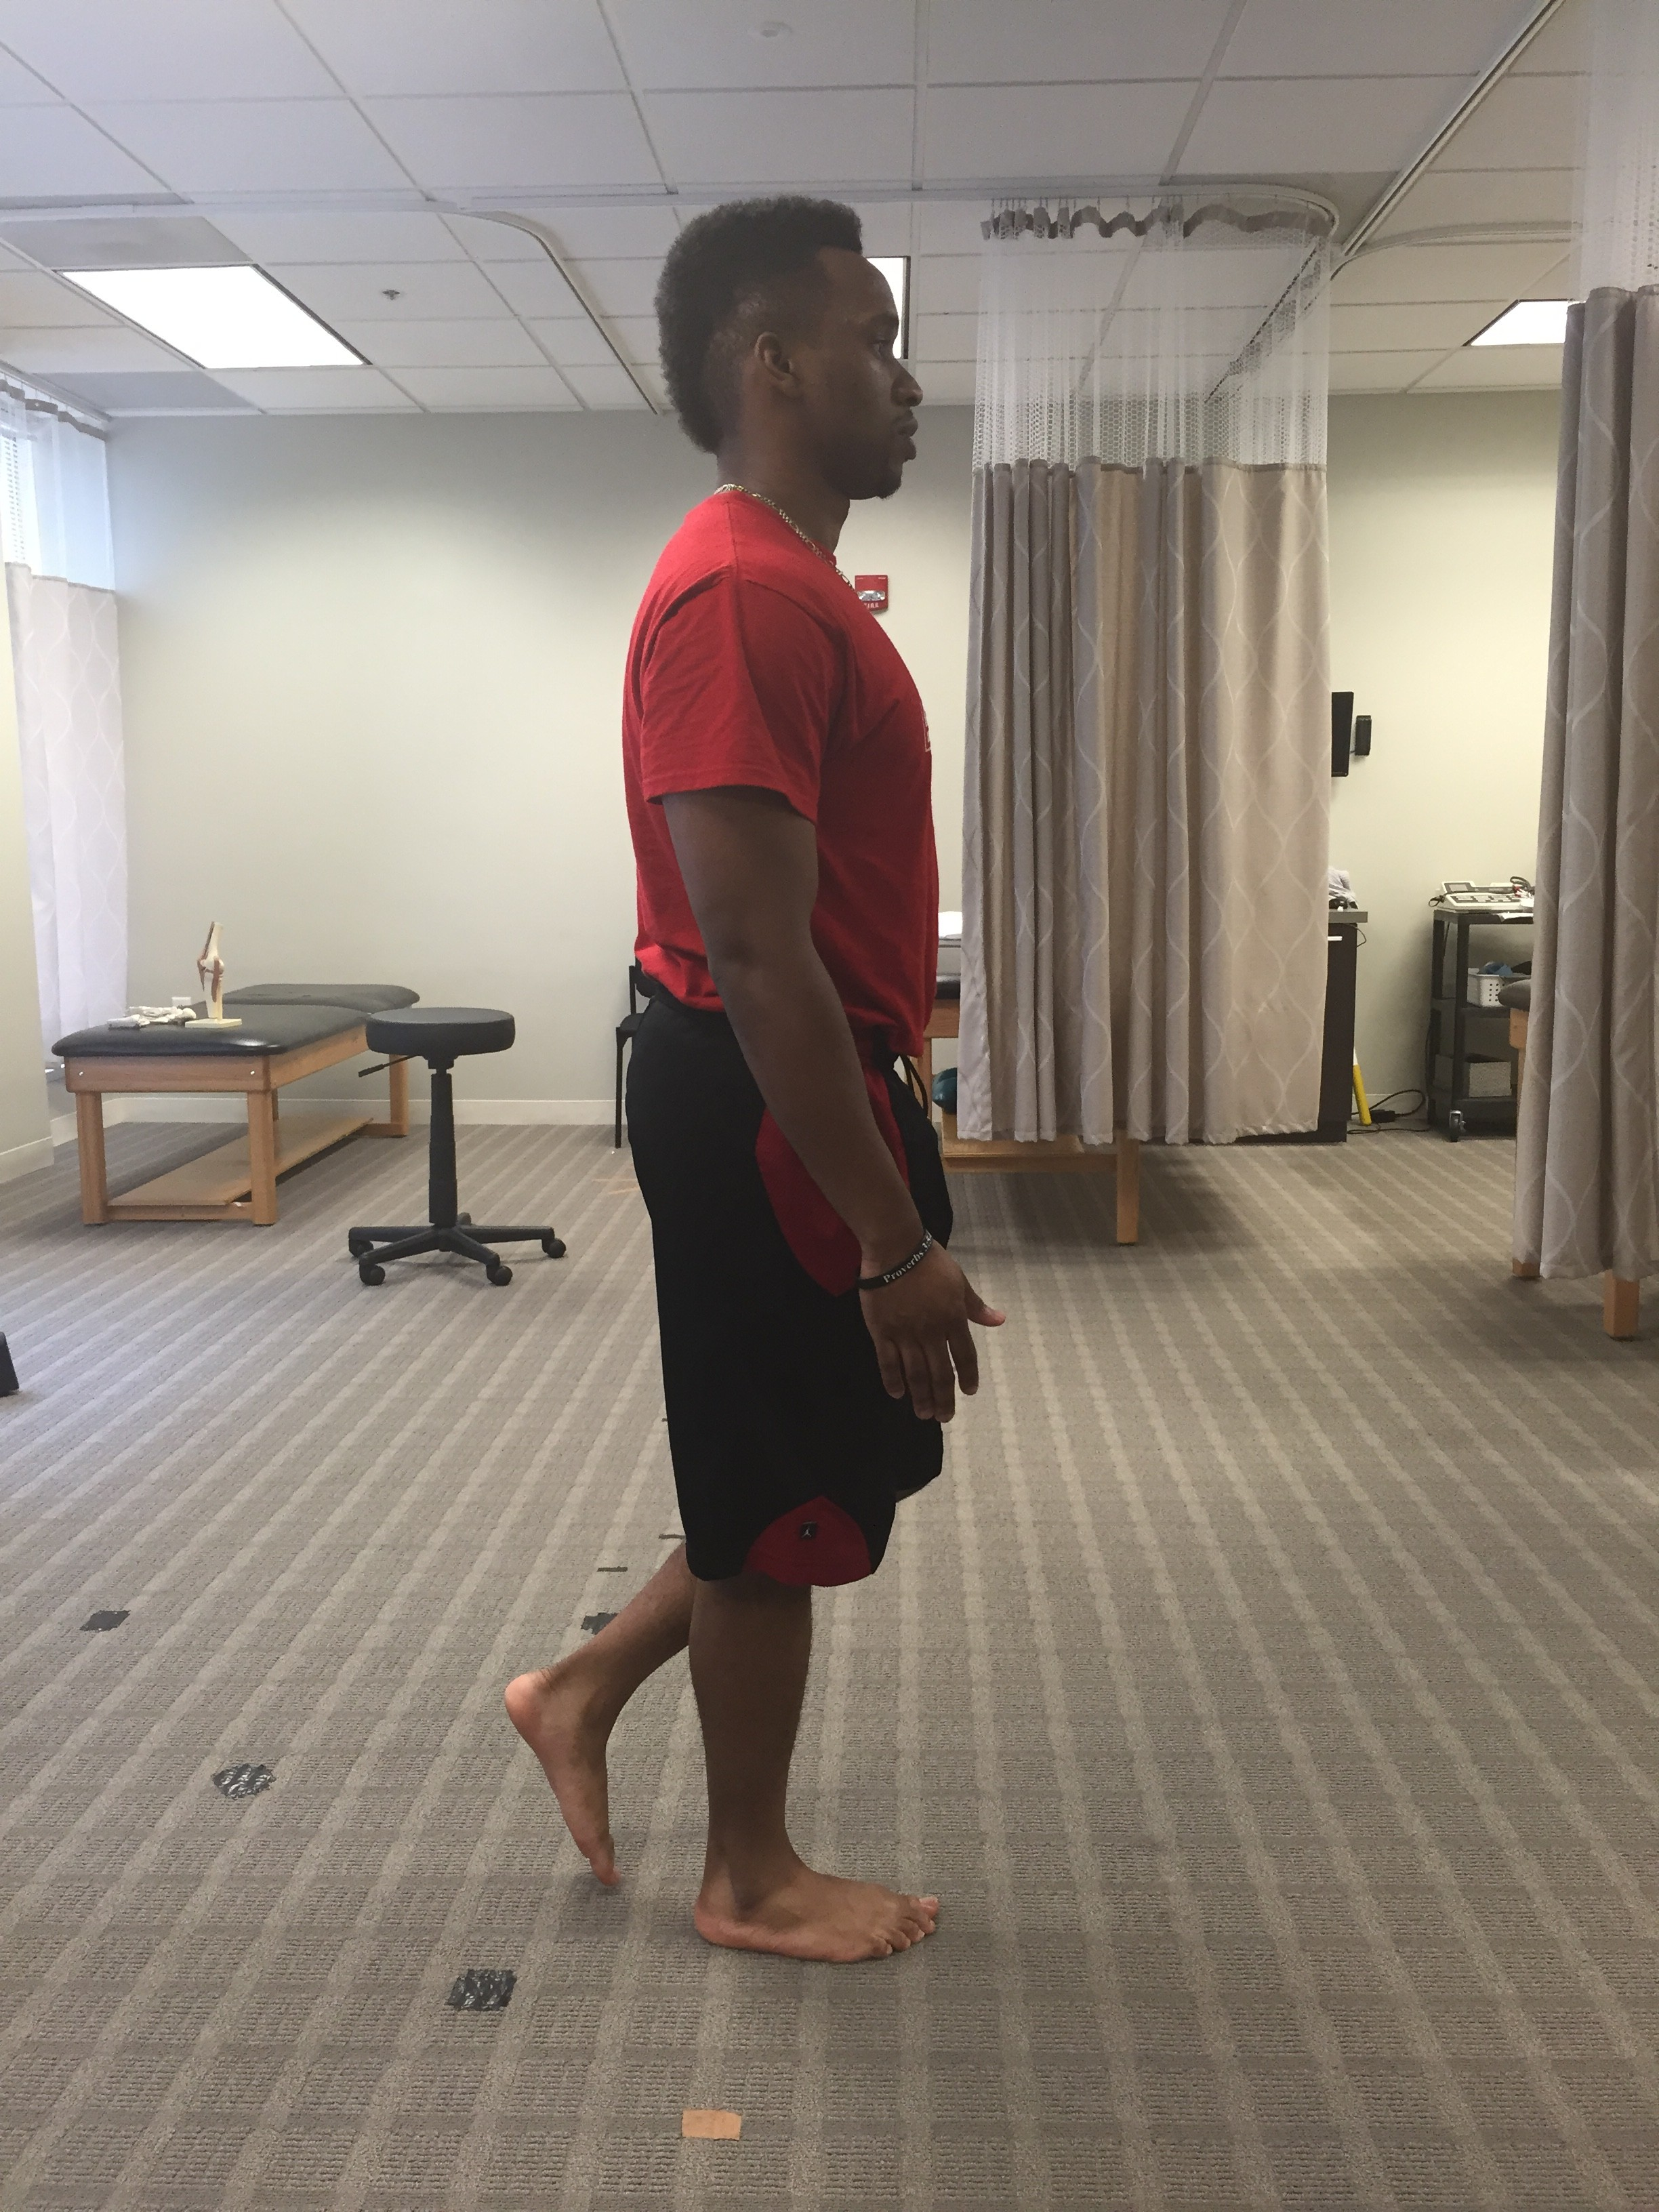 To prevent a soccer injury at the hip flexor, do the deadweight leg exercise.